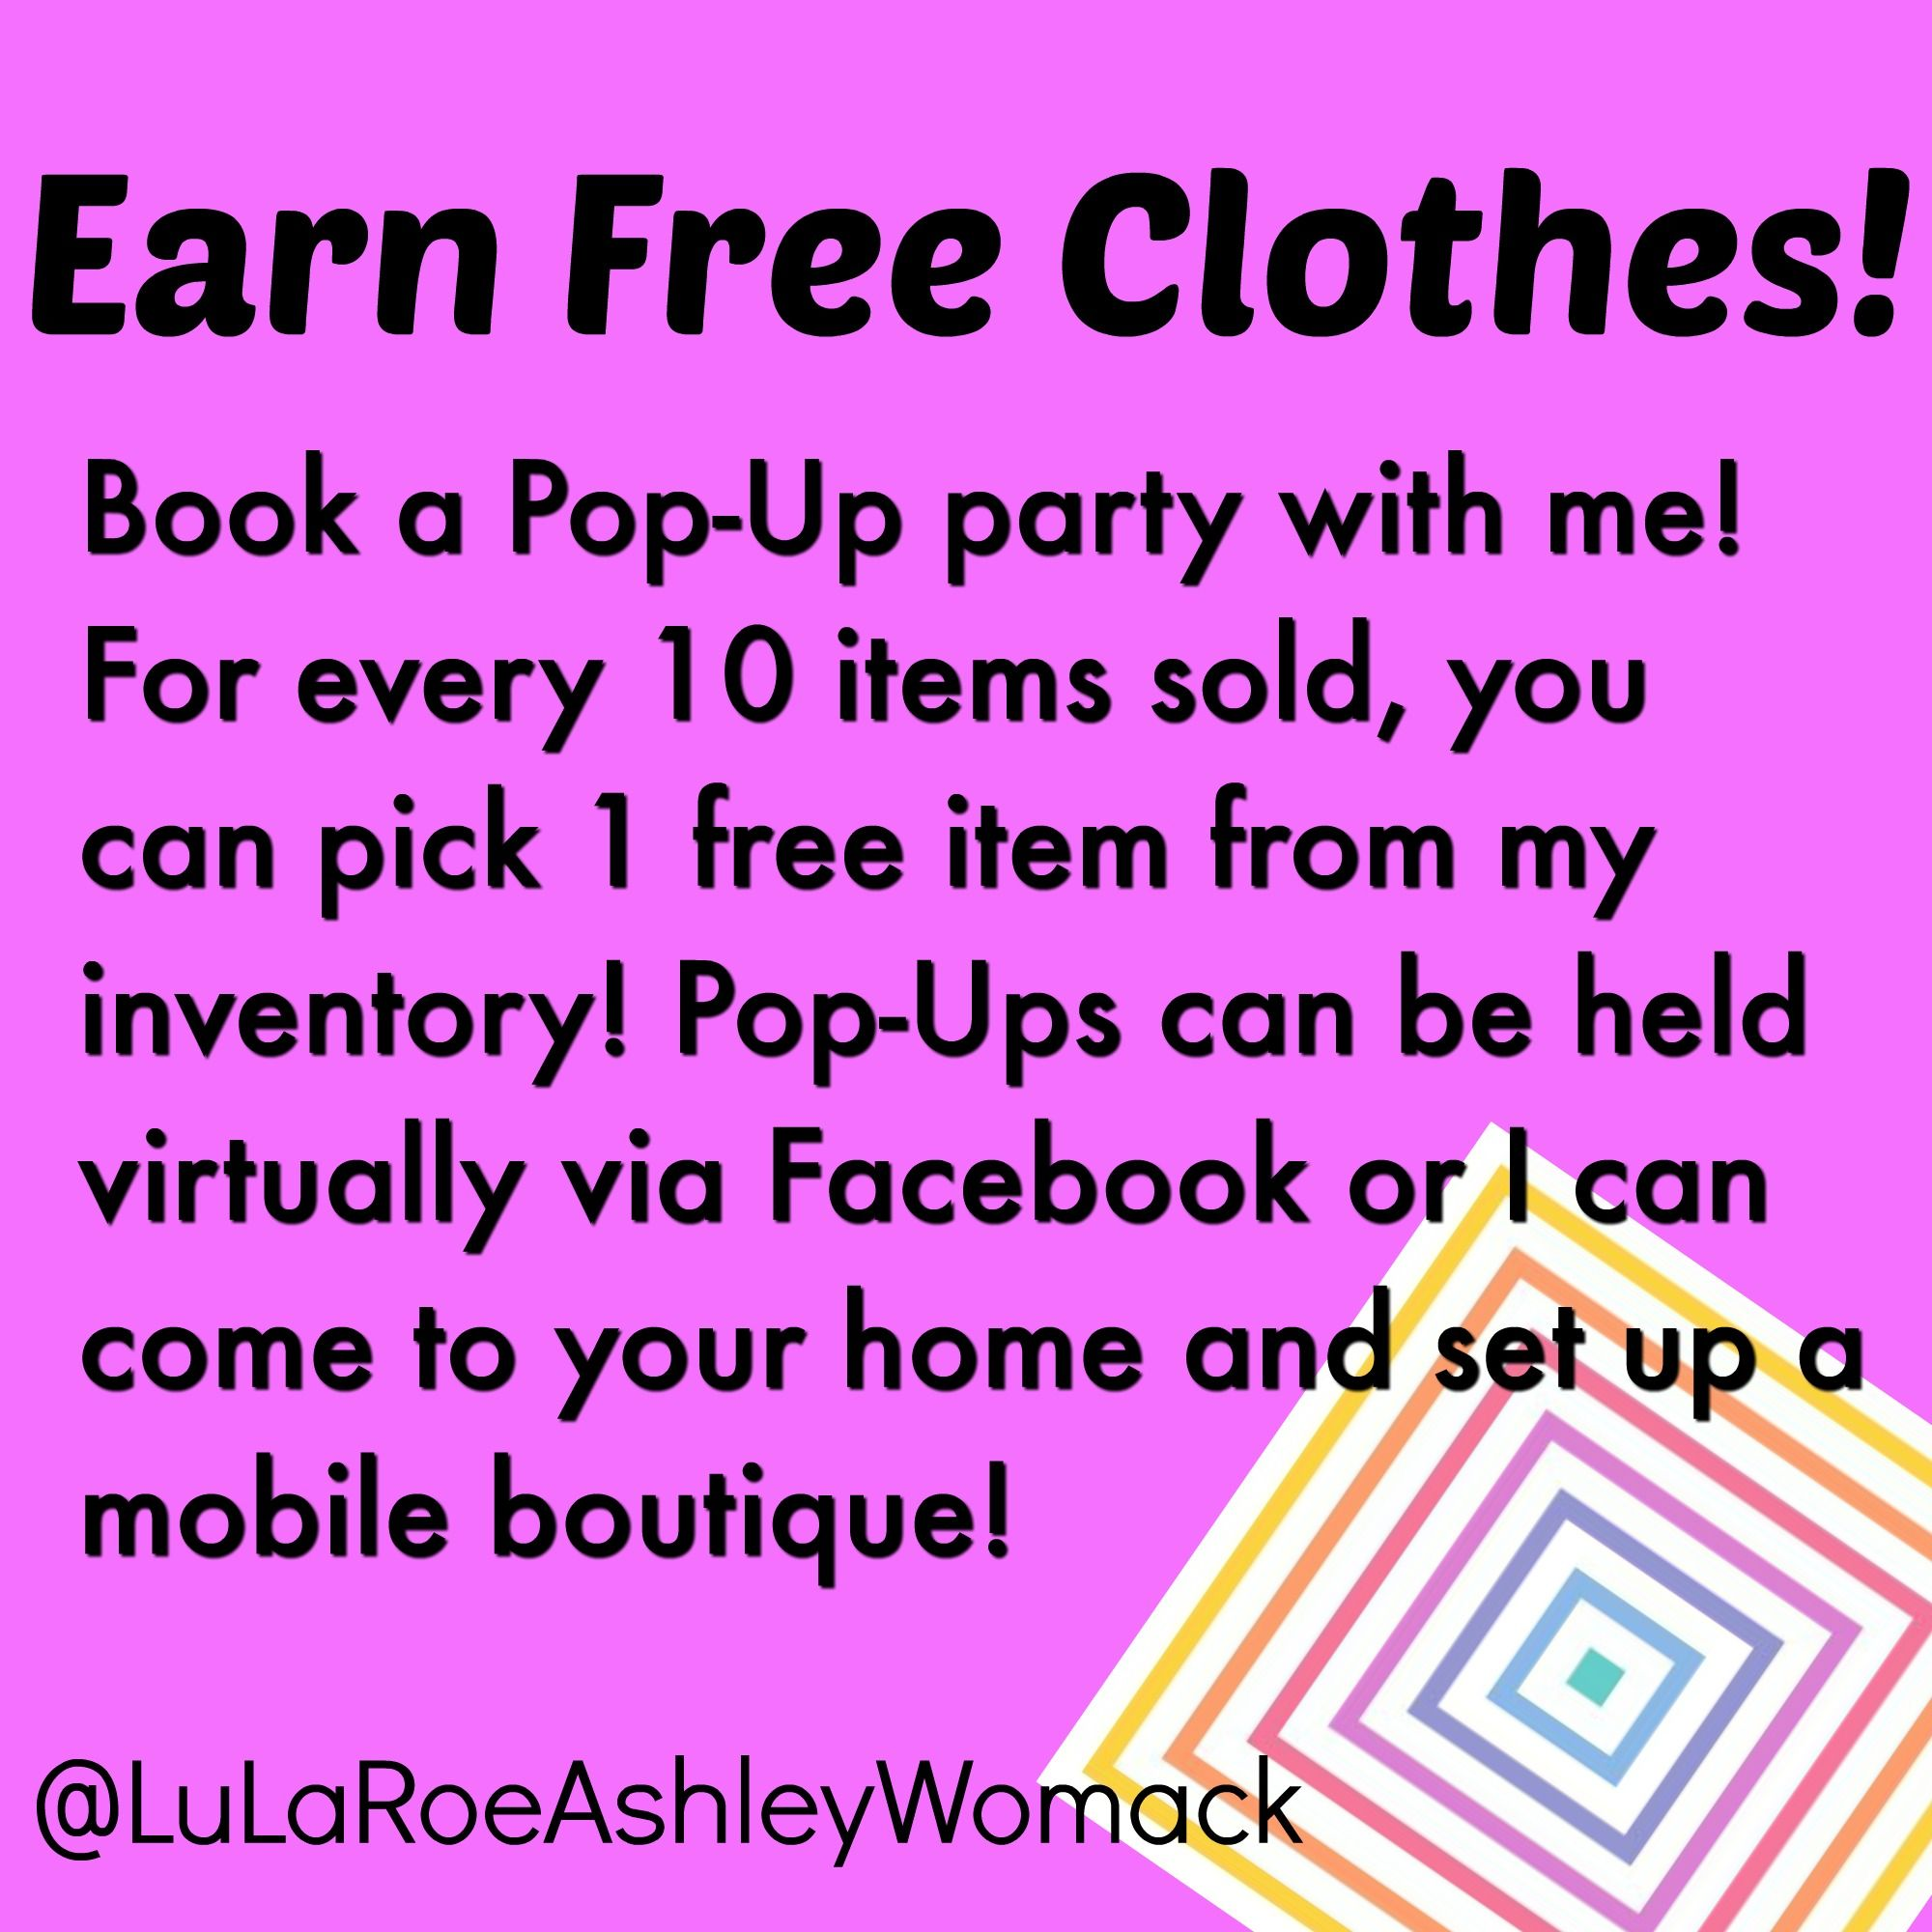 Want To Earn Free LuLaRoe Host A Popup Contact Me At - Past due invoice wording women clothing stores online